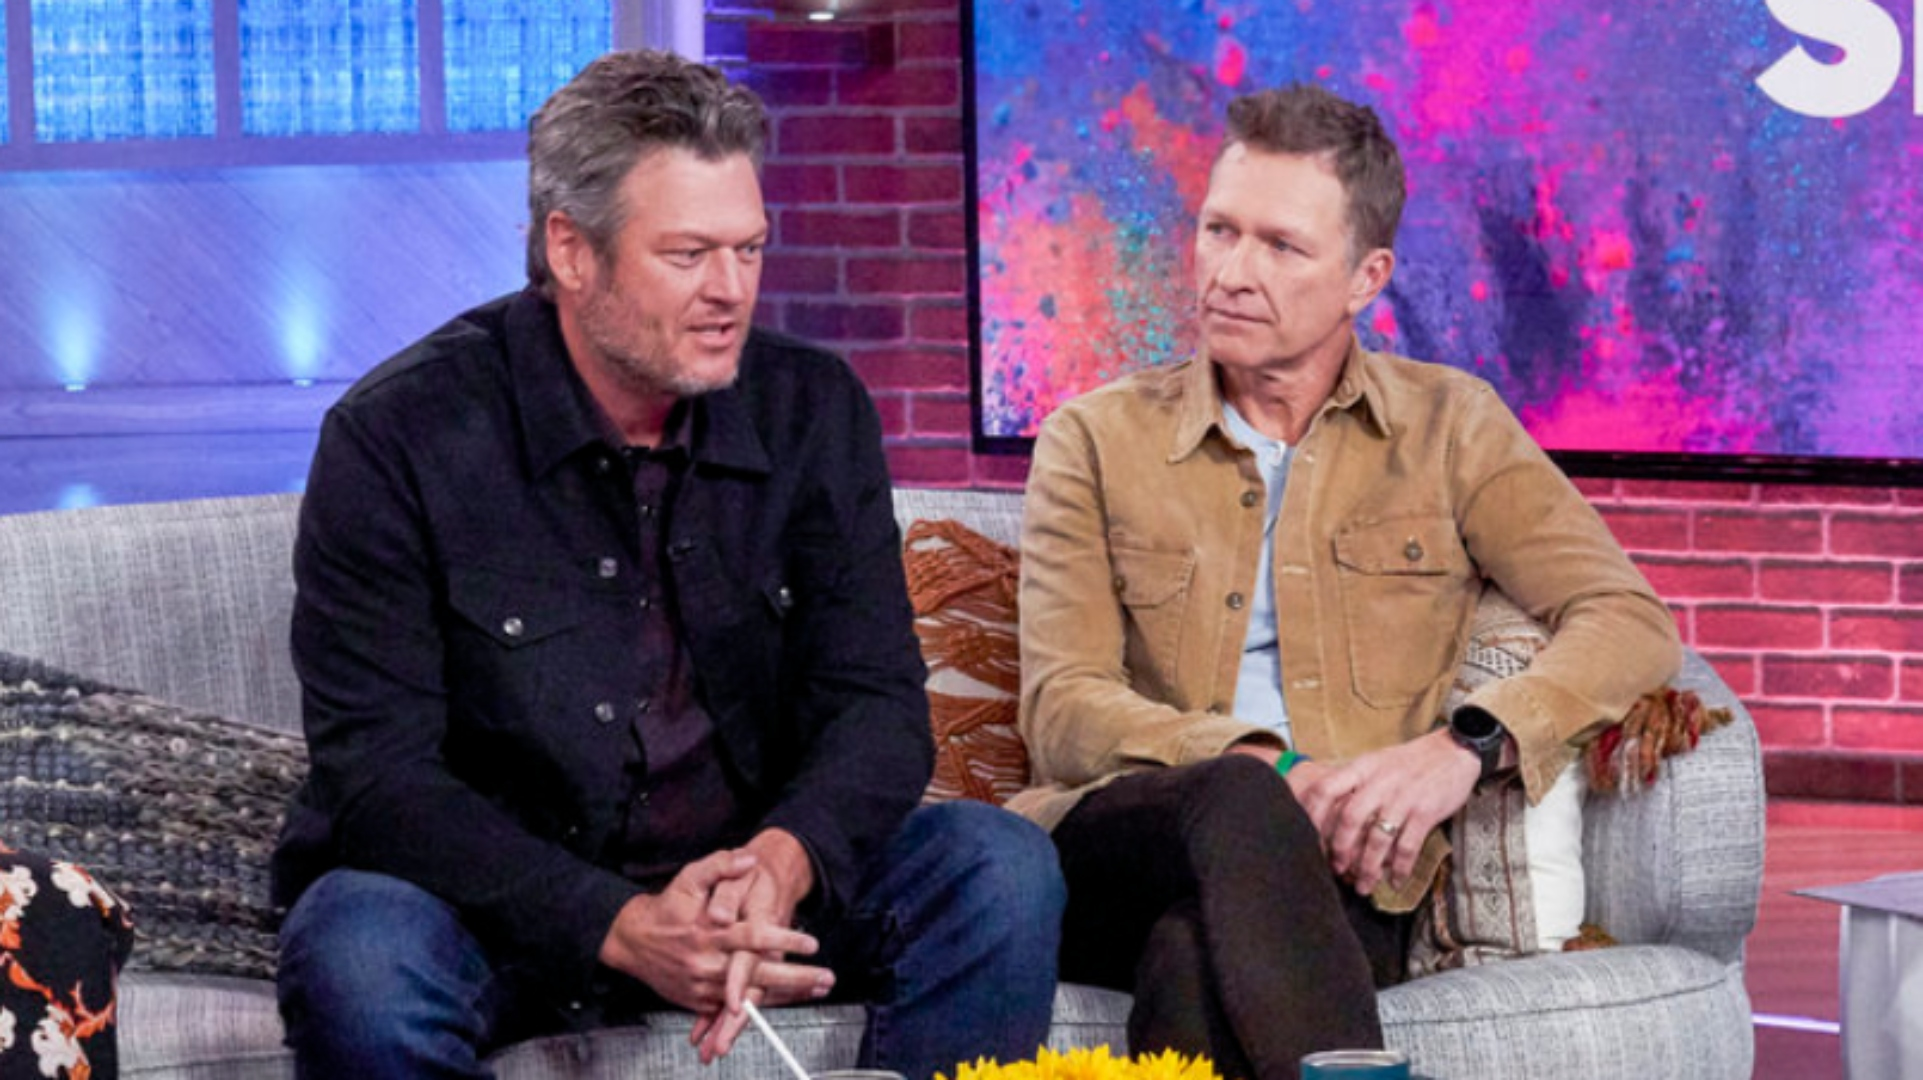 Blake Shelton Grieved for Craig Morgan in a Beautiful Way